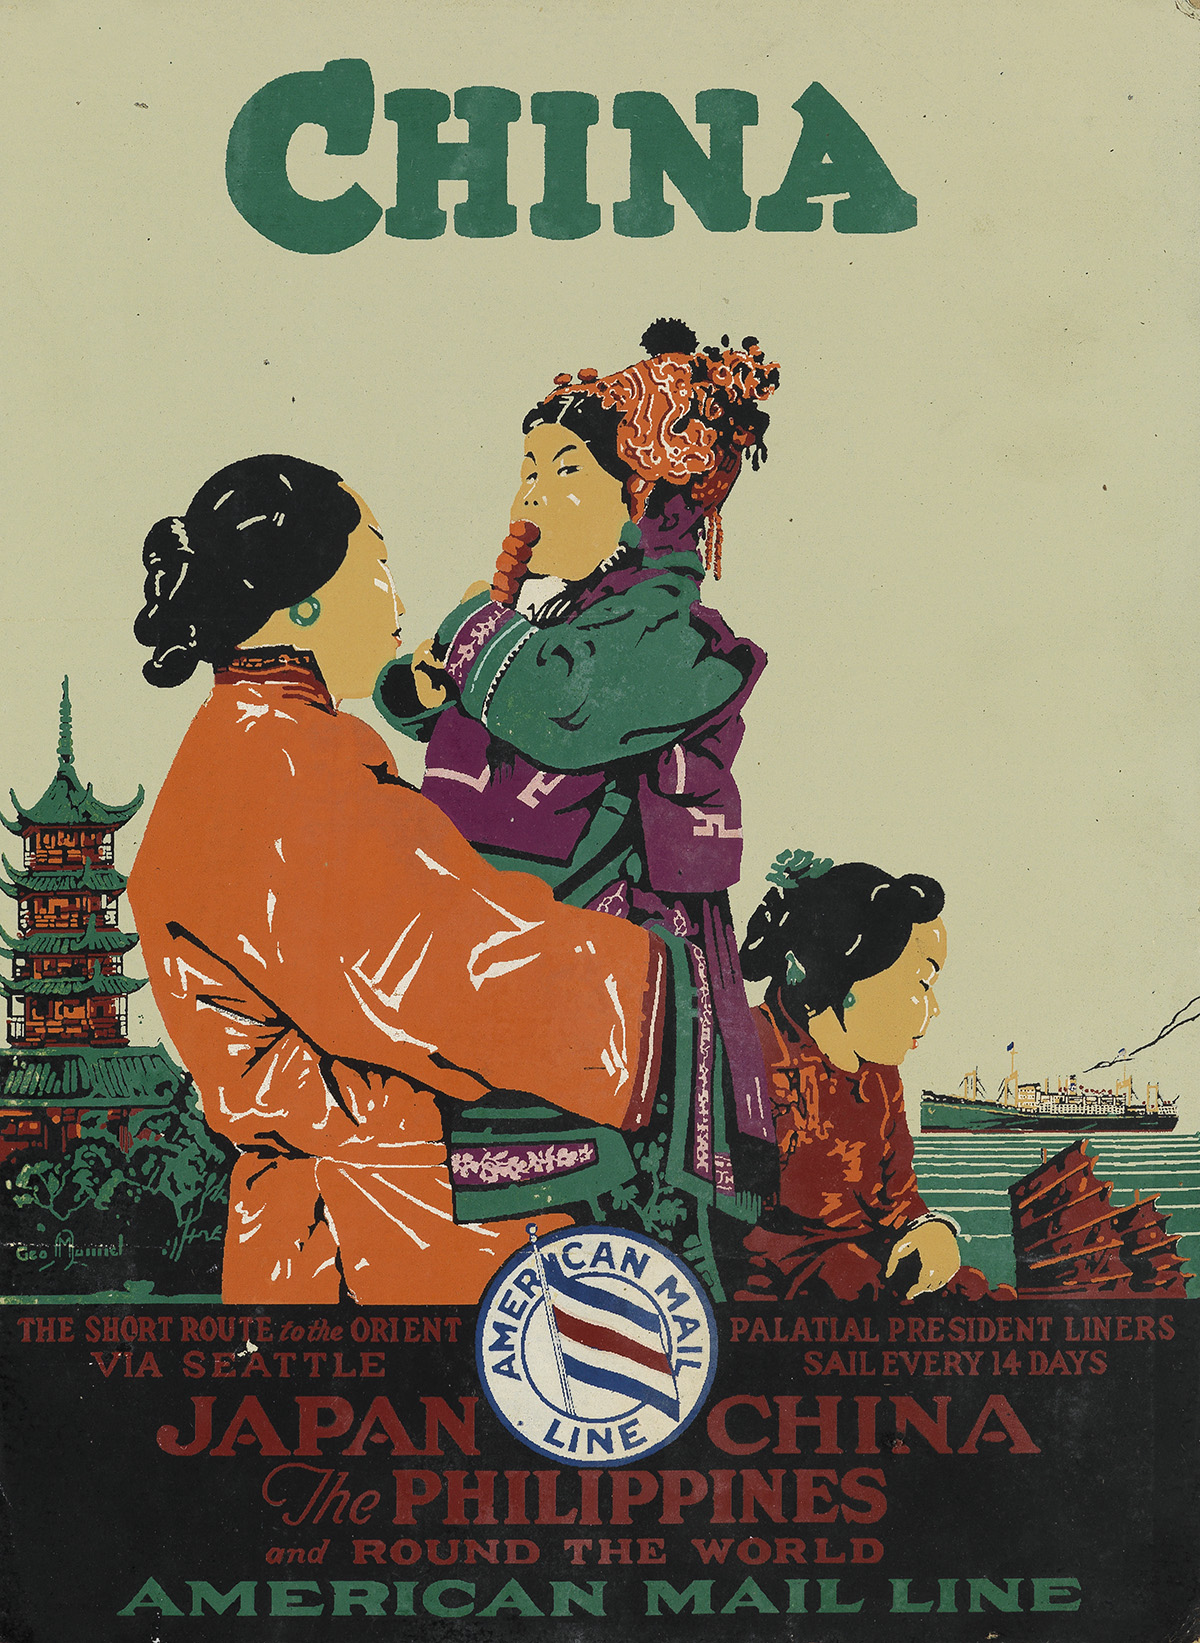 VARIOUS-ARTISTS-[EAST-ASIA-TRAVEL]-Group-of-3-window-cards-S